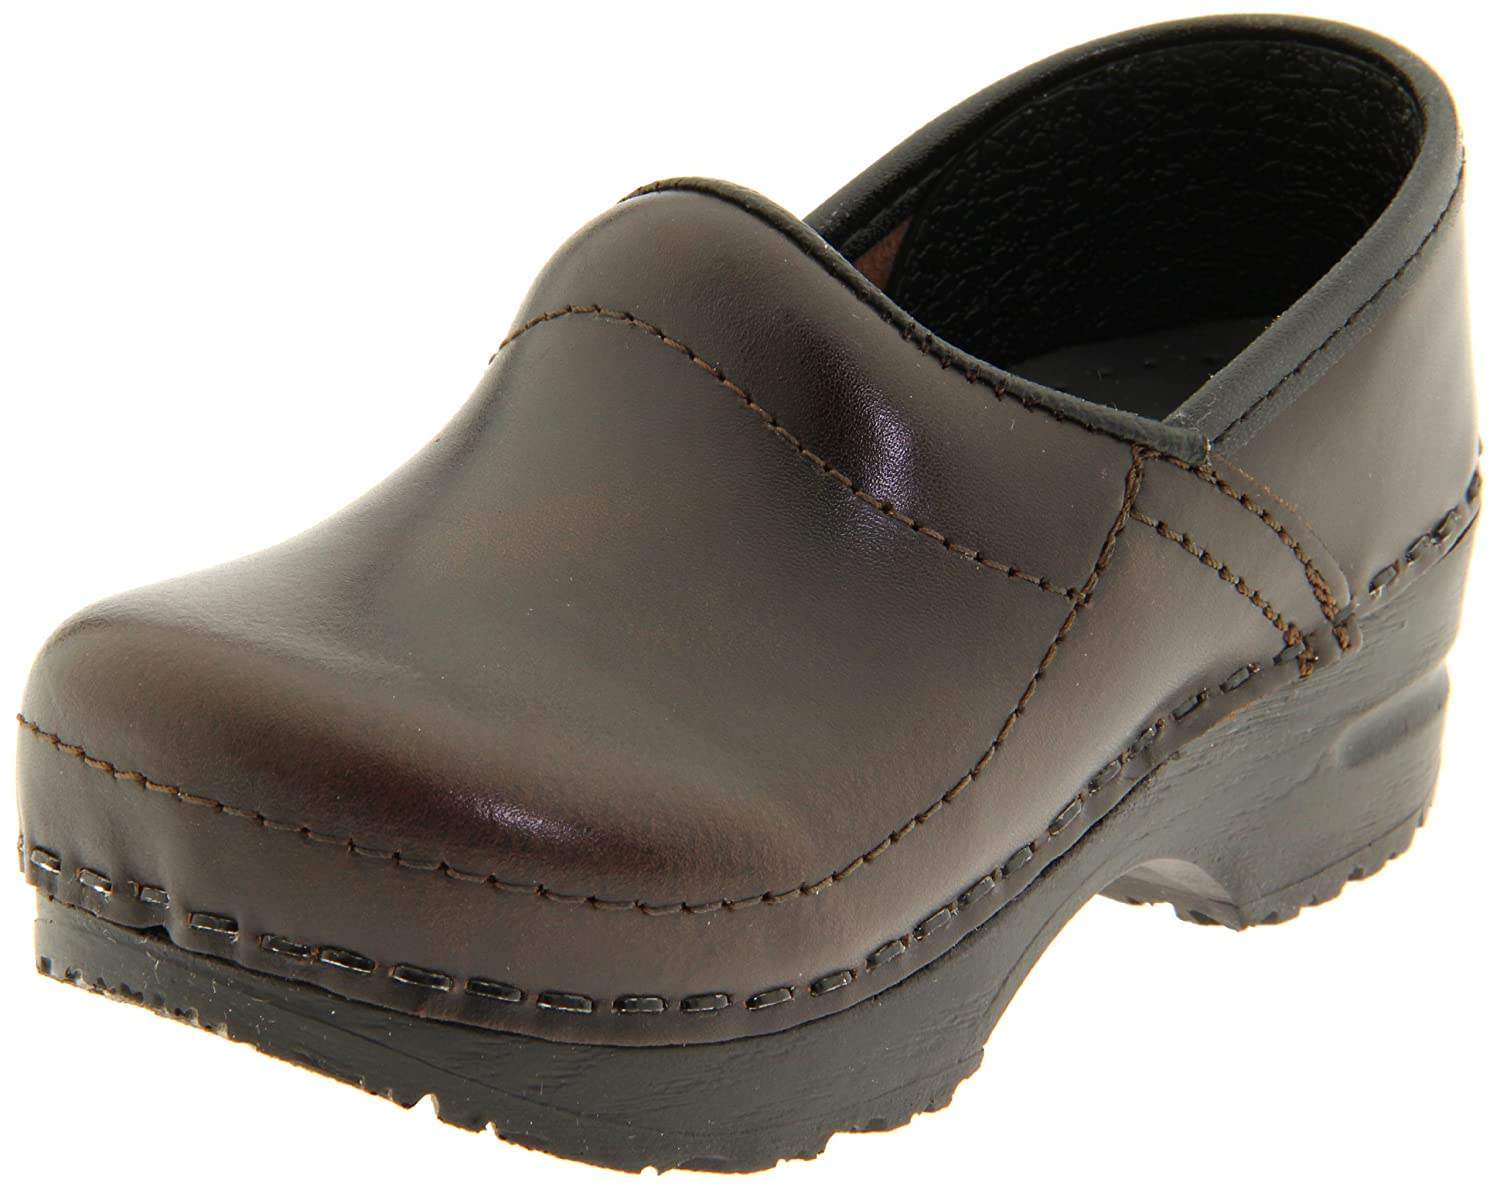 Sanita Gitte Cabrio Clog (Toddler/Little Kid/Big Kid) GITTE CABRIO- K